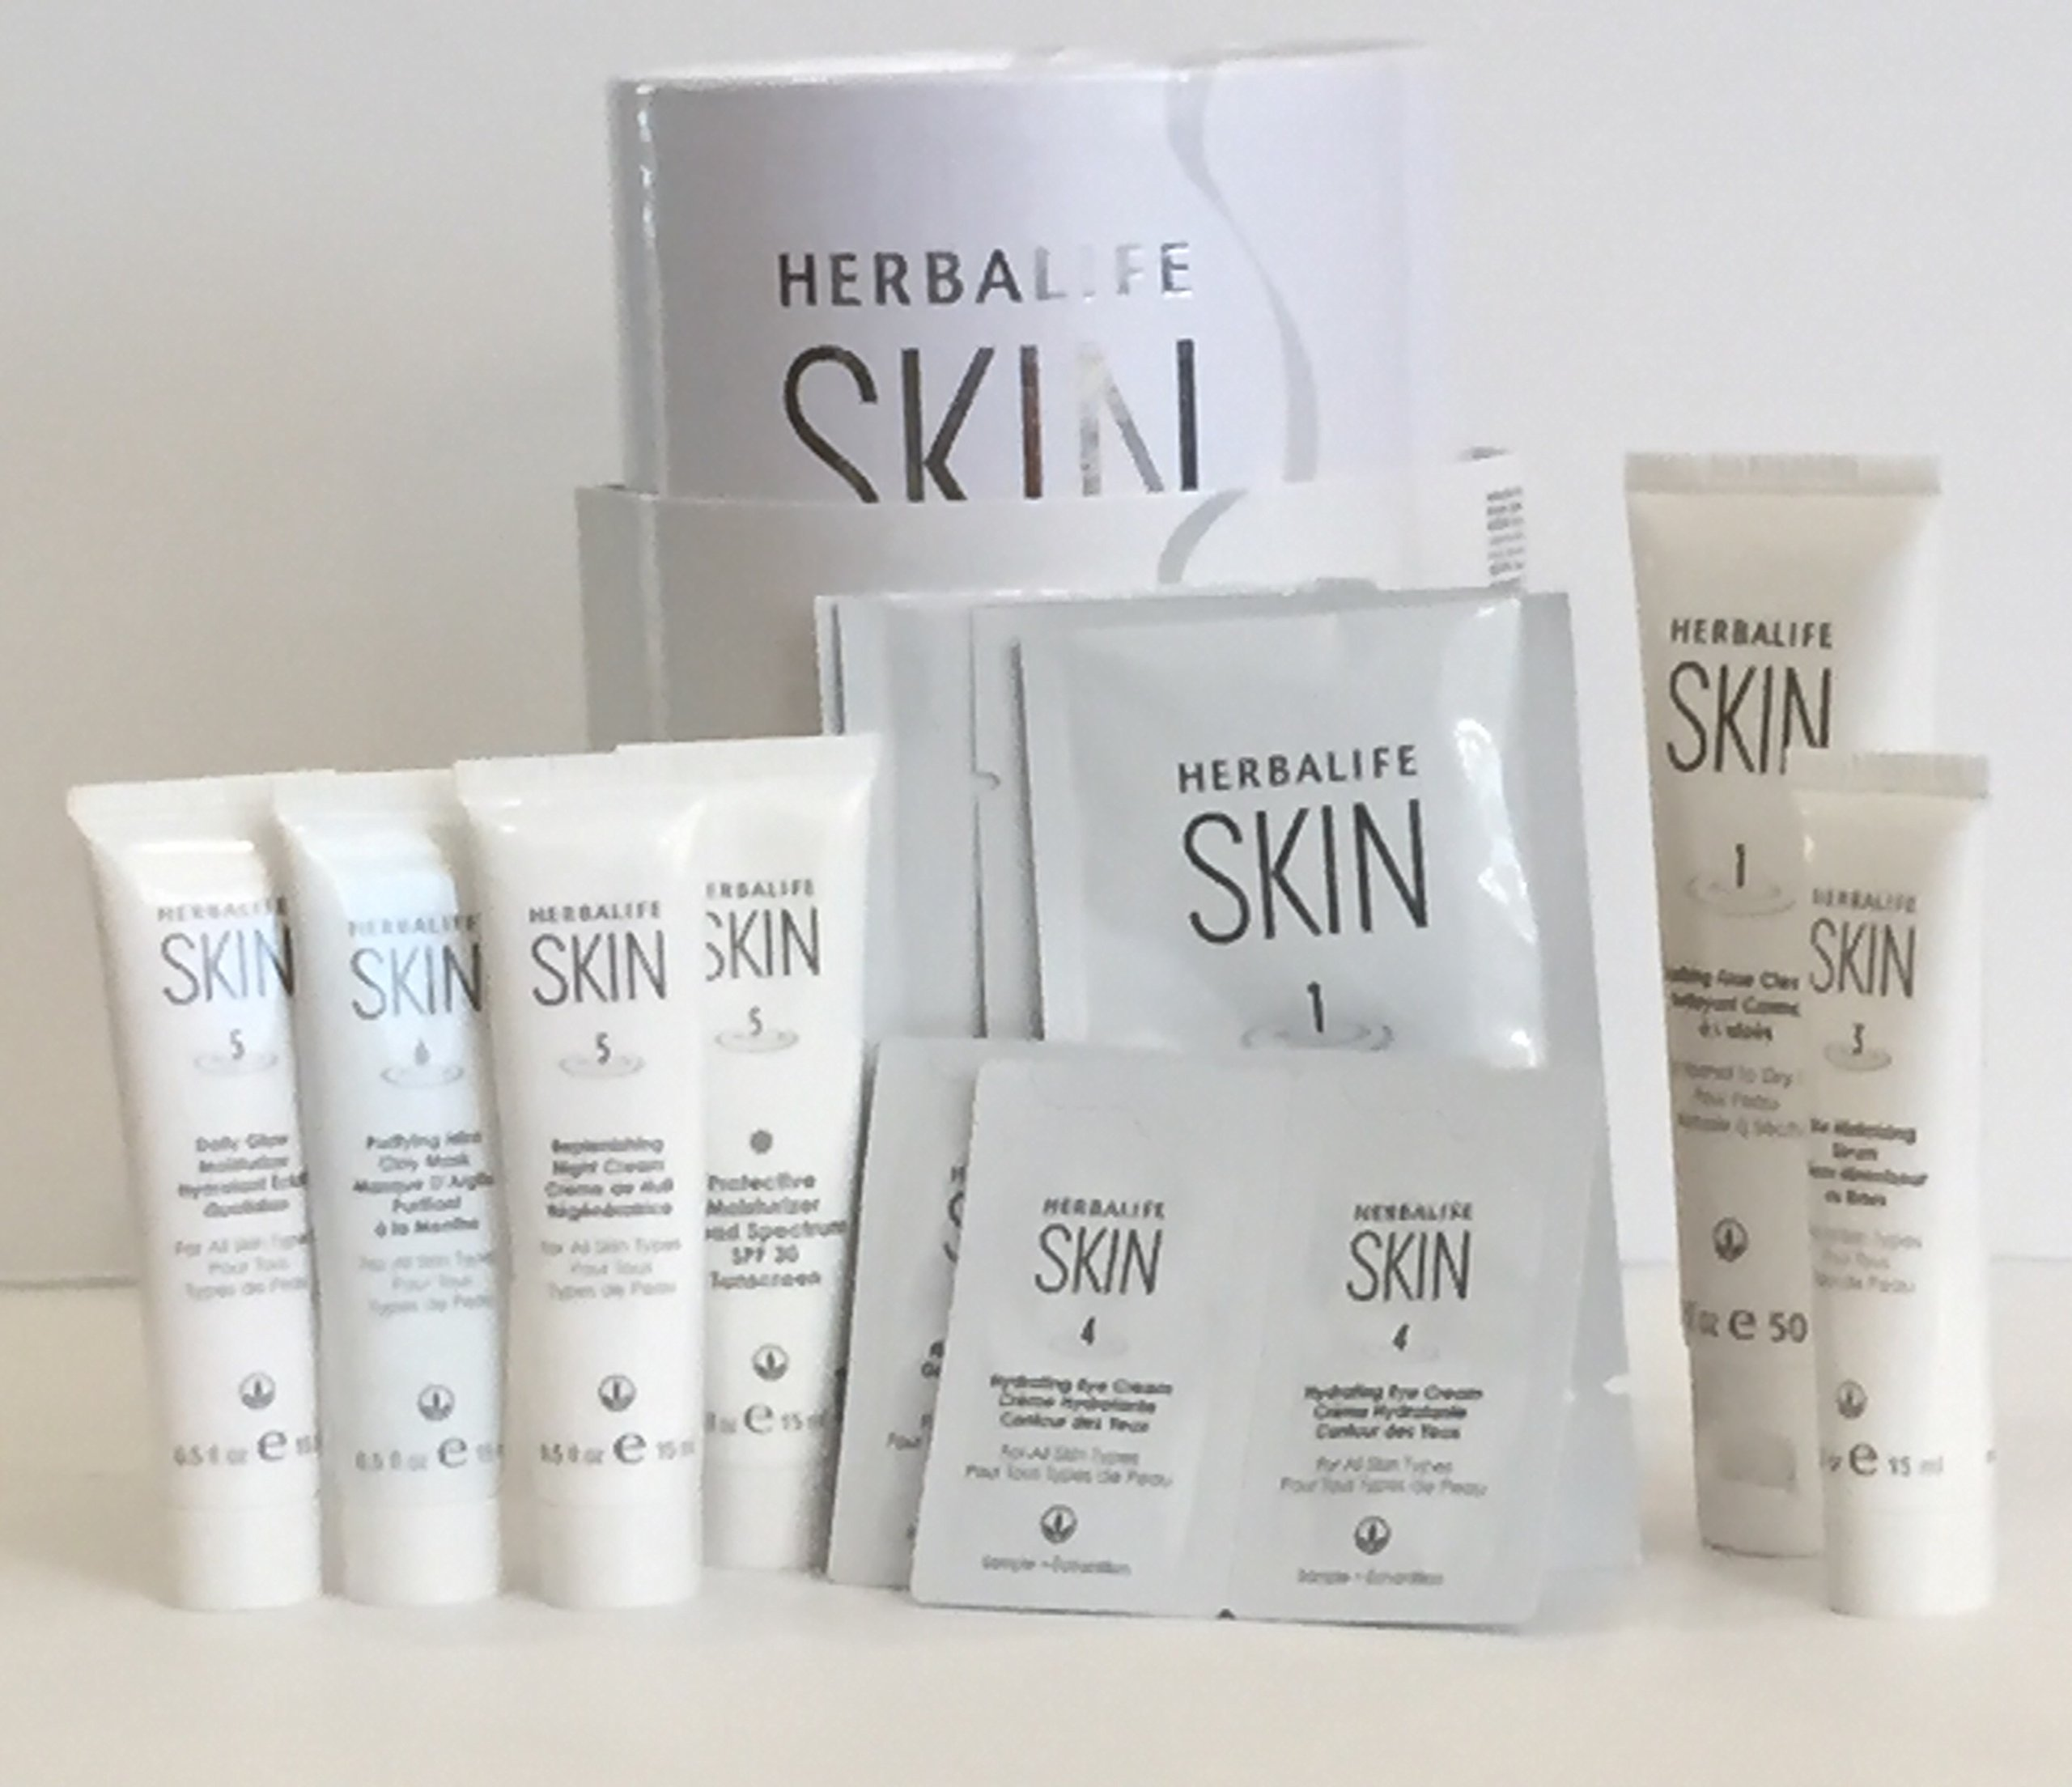 Herbalife Skin 7 Day Results Kit Buy Online In Fiji Herbalife Products In Fiji See Prices Reviews And Free Delivery Over 200 Fj Desertcart